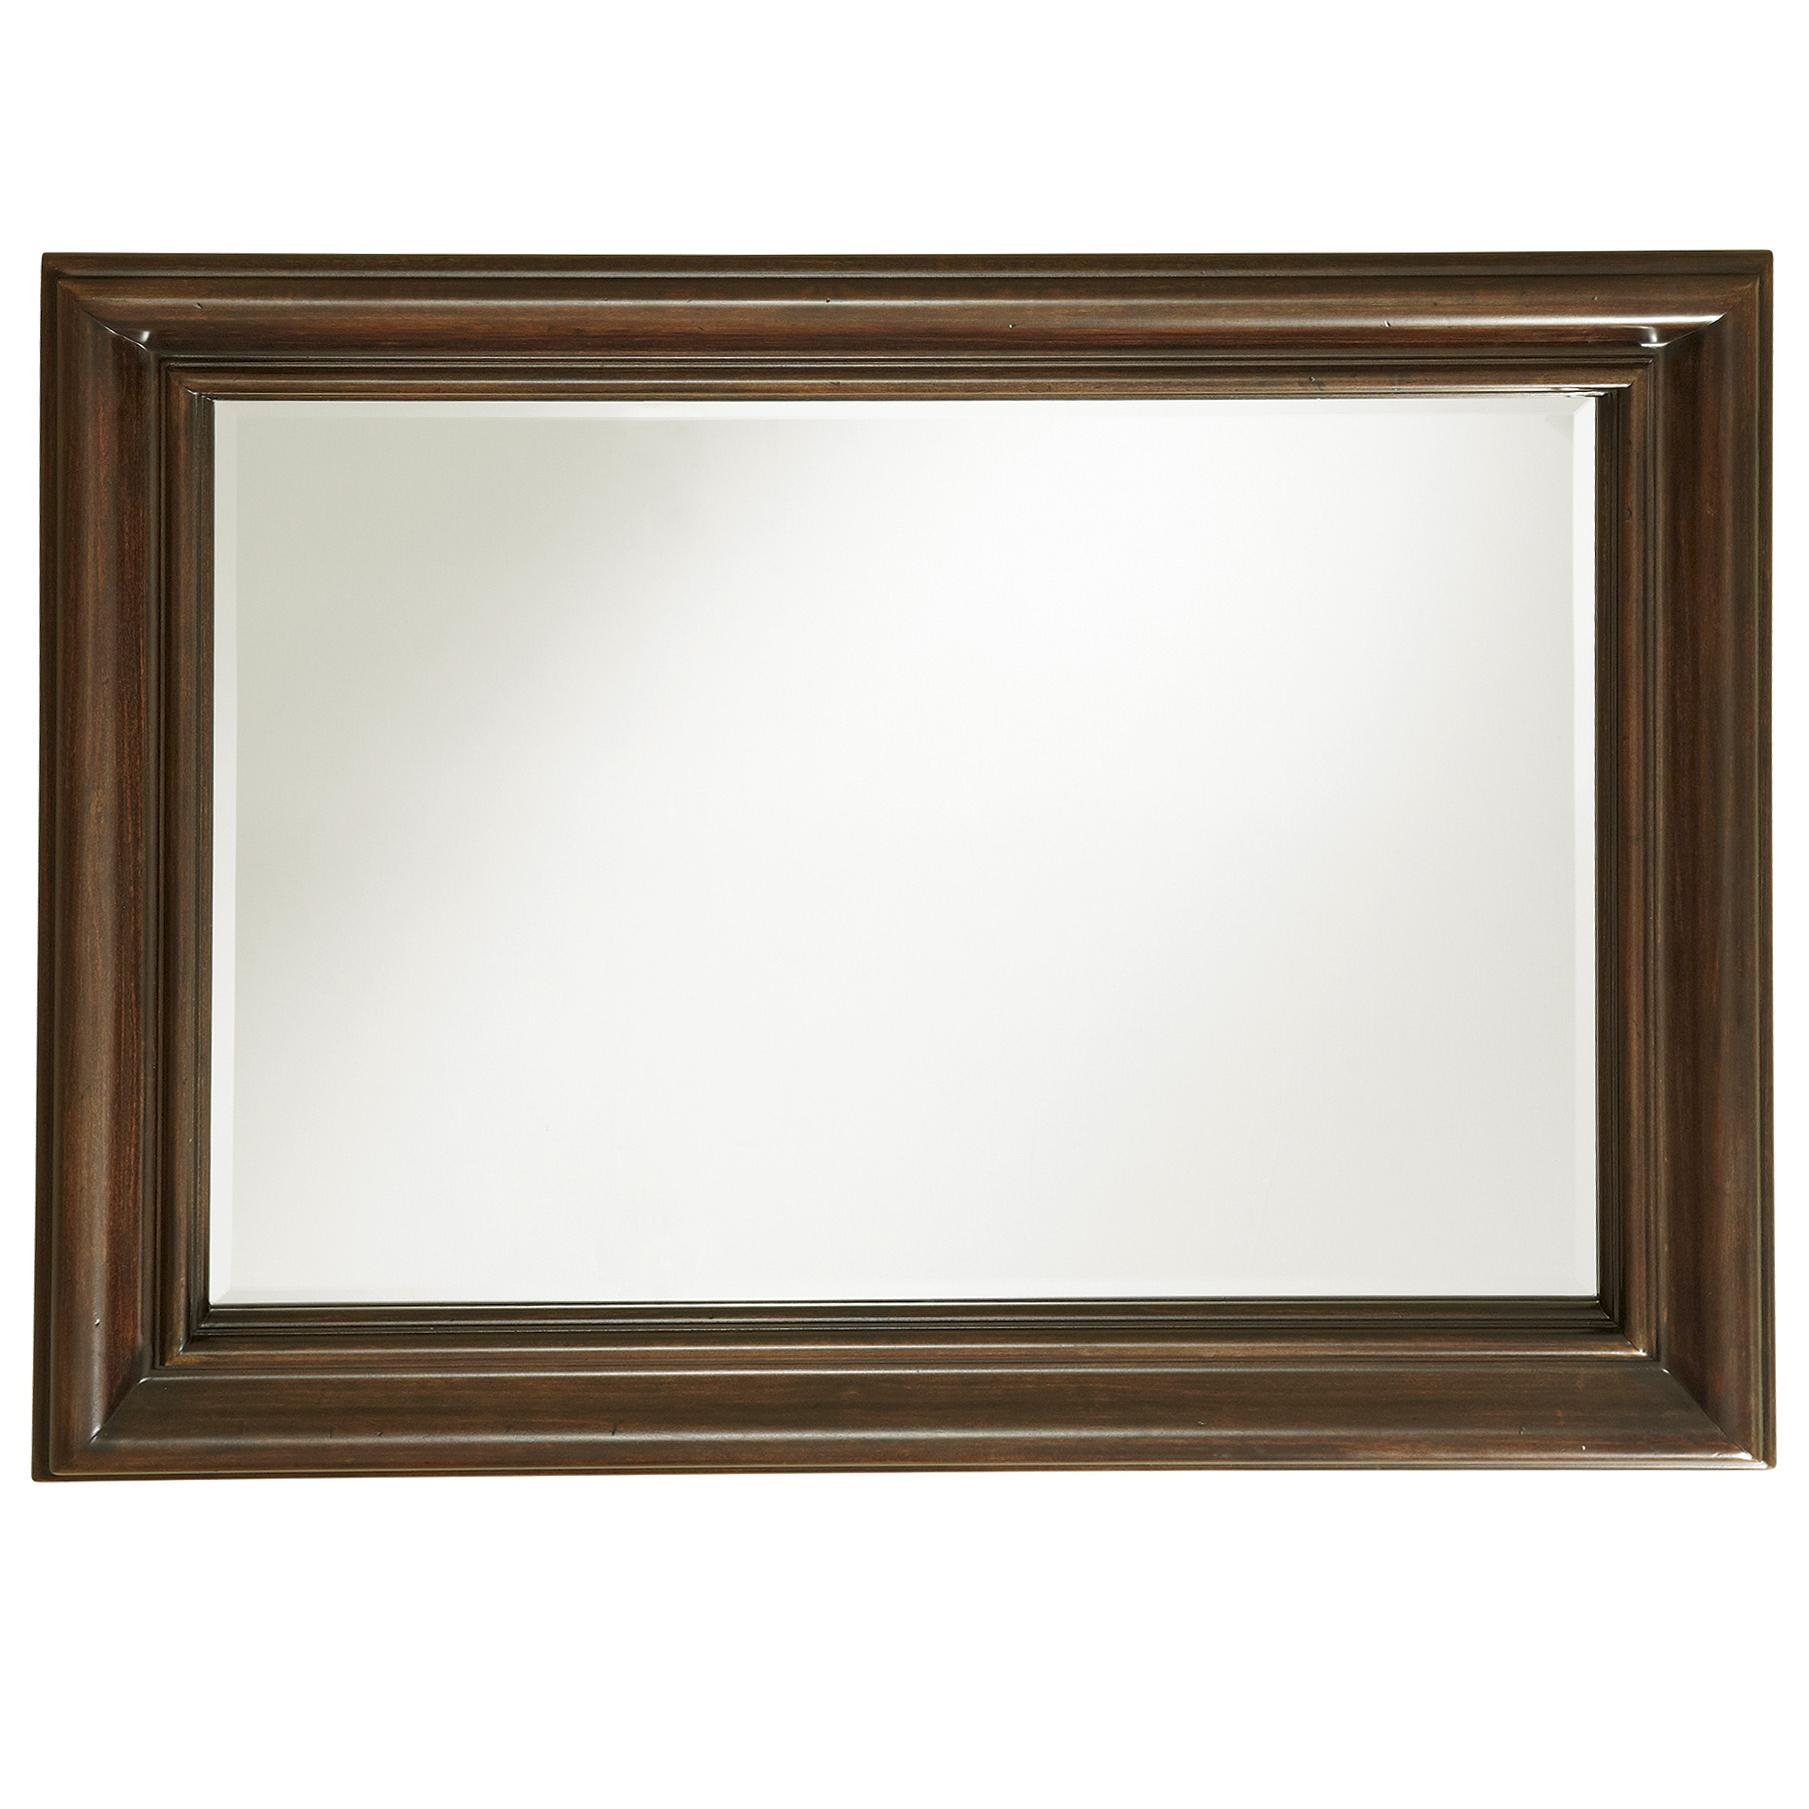 Morris Home Furnishings Providence Providence Mirror - Item Number: 35604M